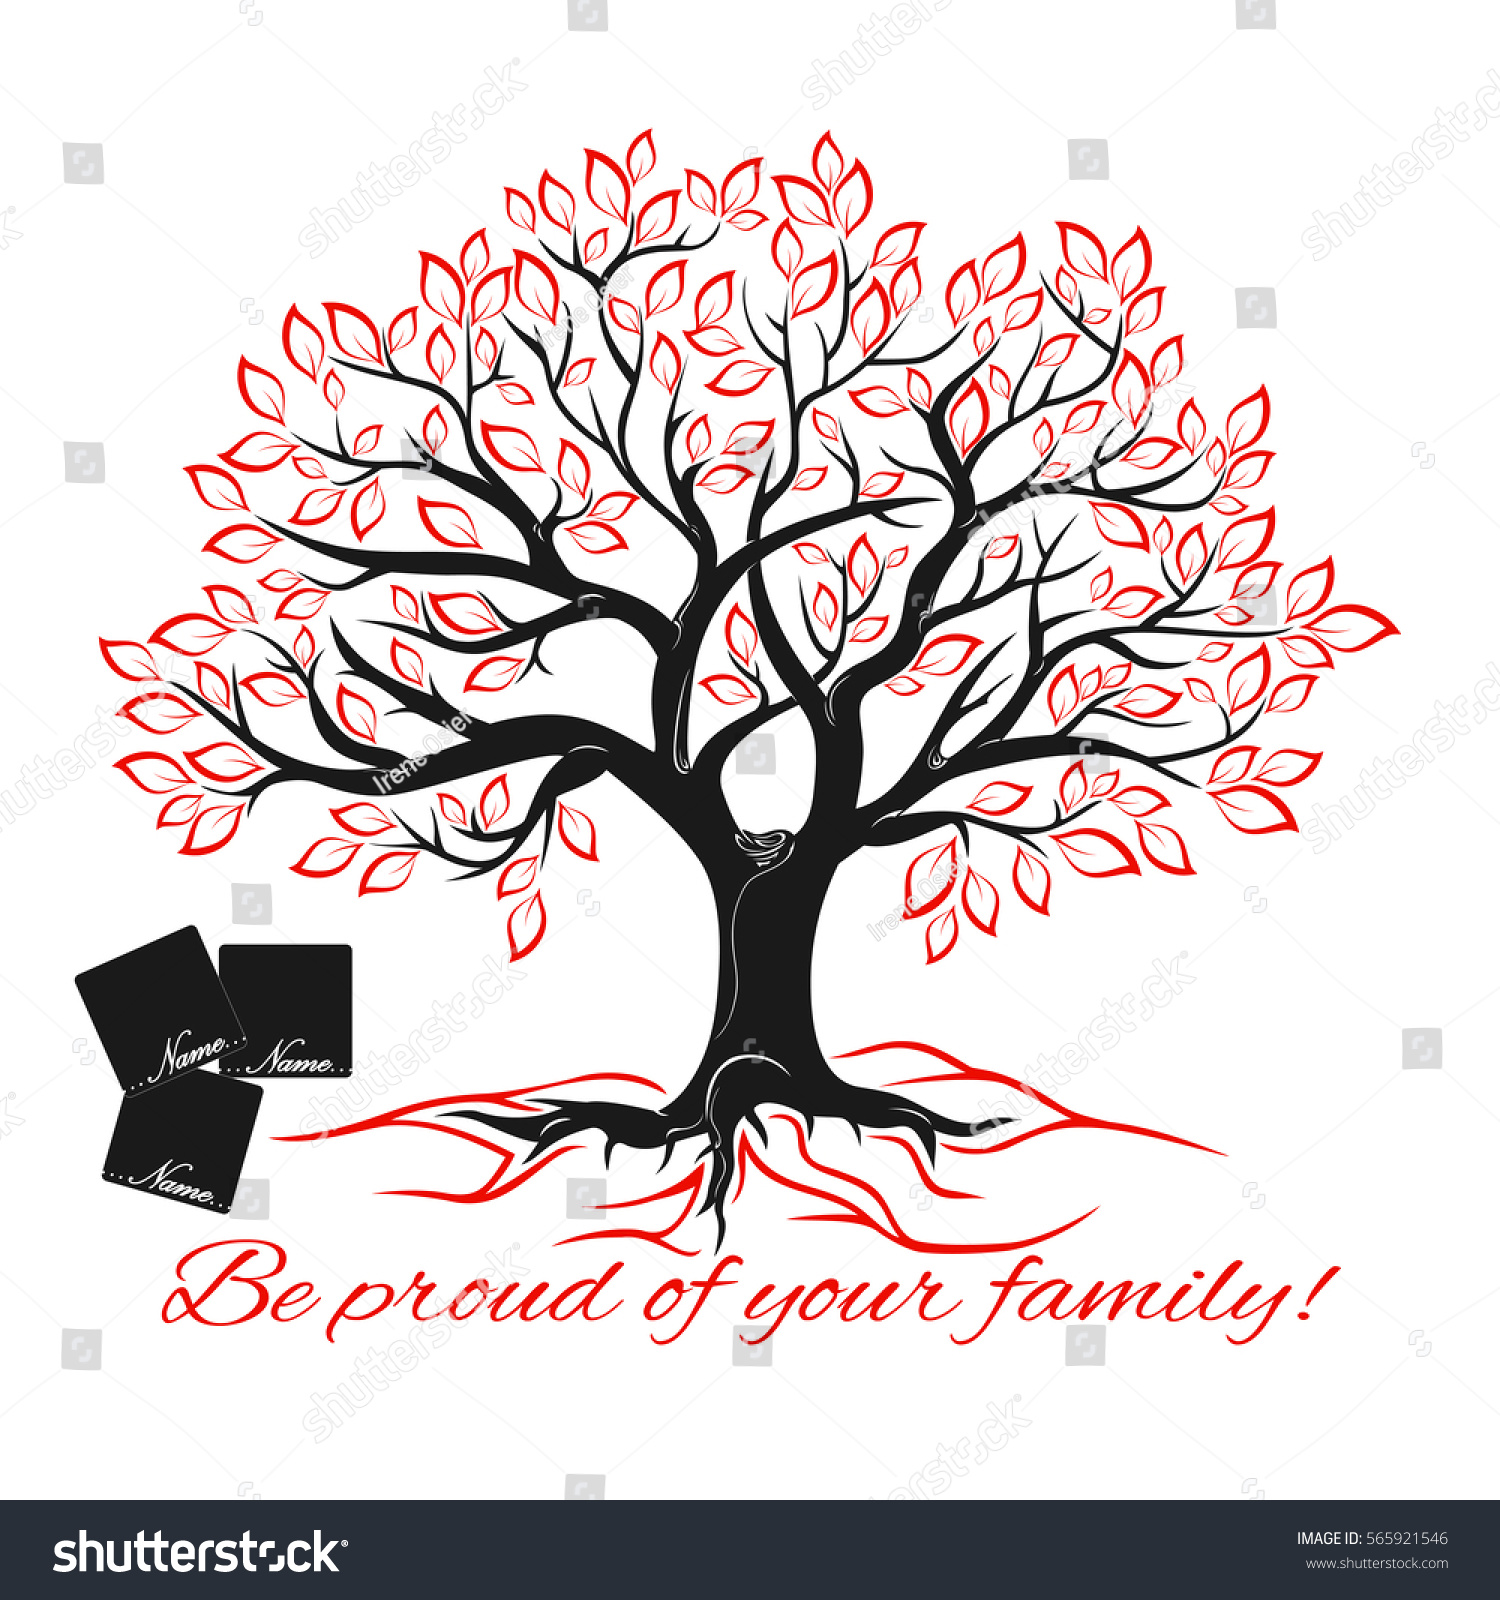 Genealogical Tree Concept Family Tree Template Stock